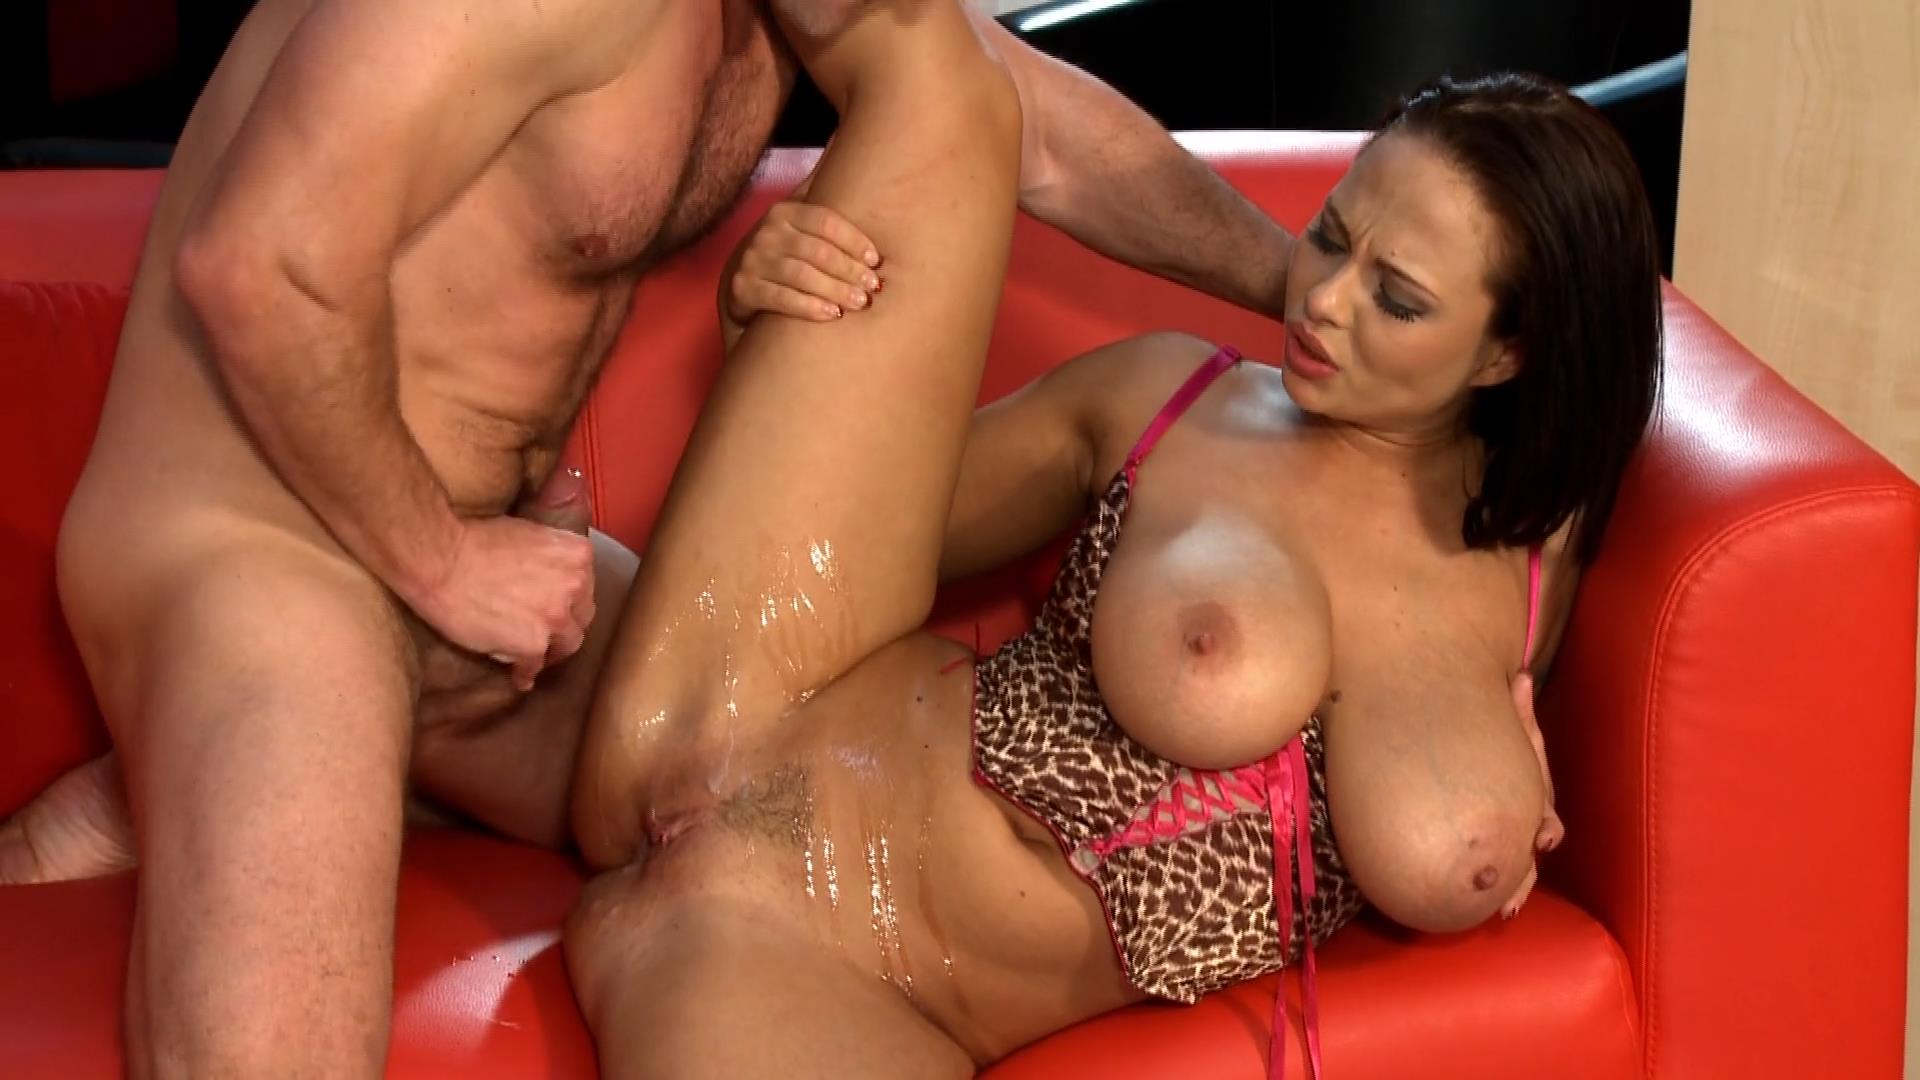 Big boobed woman getting fucked